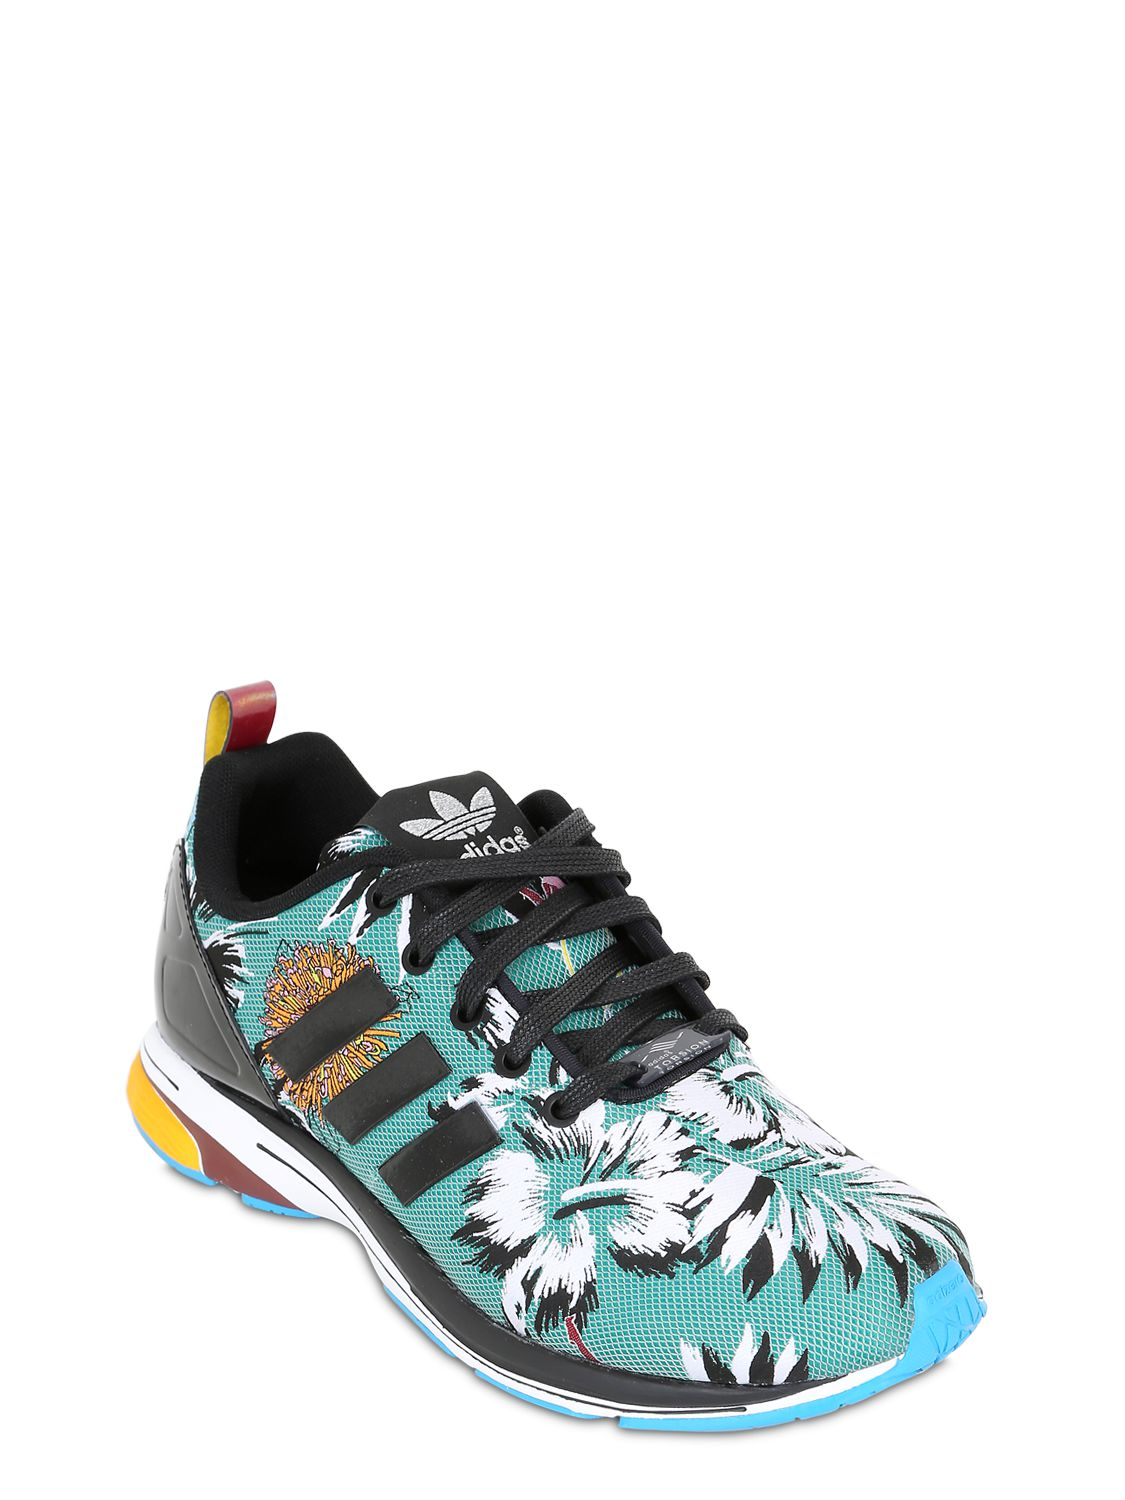 Lyst Adidas Originals Zx Flux Tropical Print Jacquard